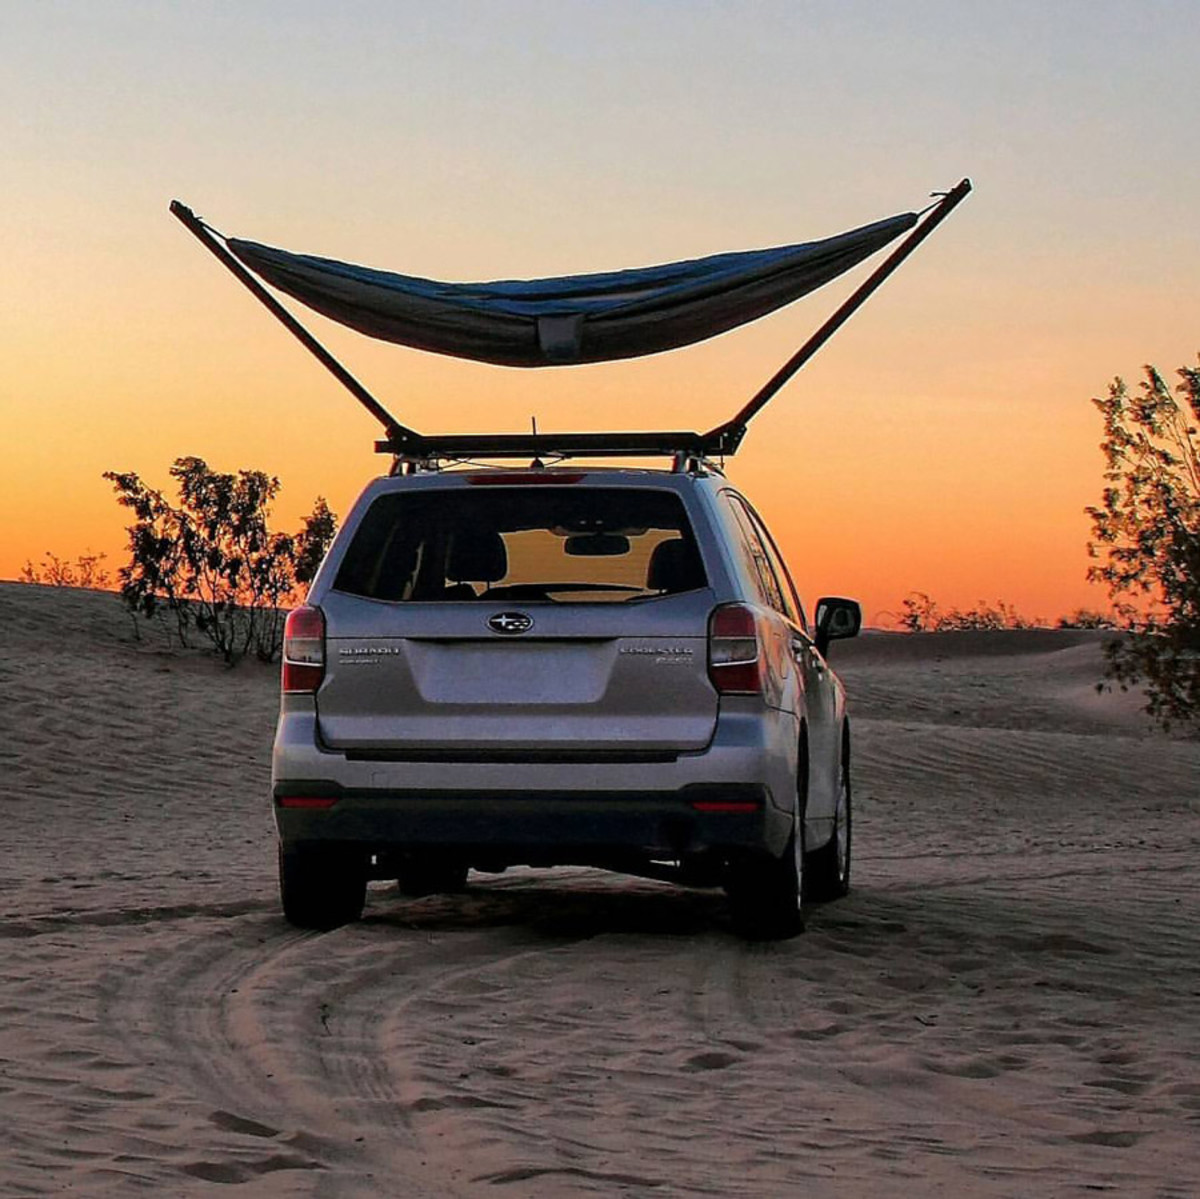 Hammock mounted on a roof rack